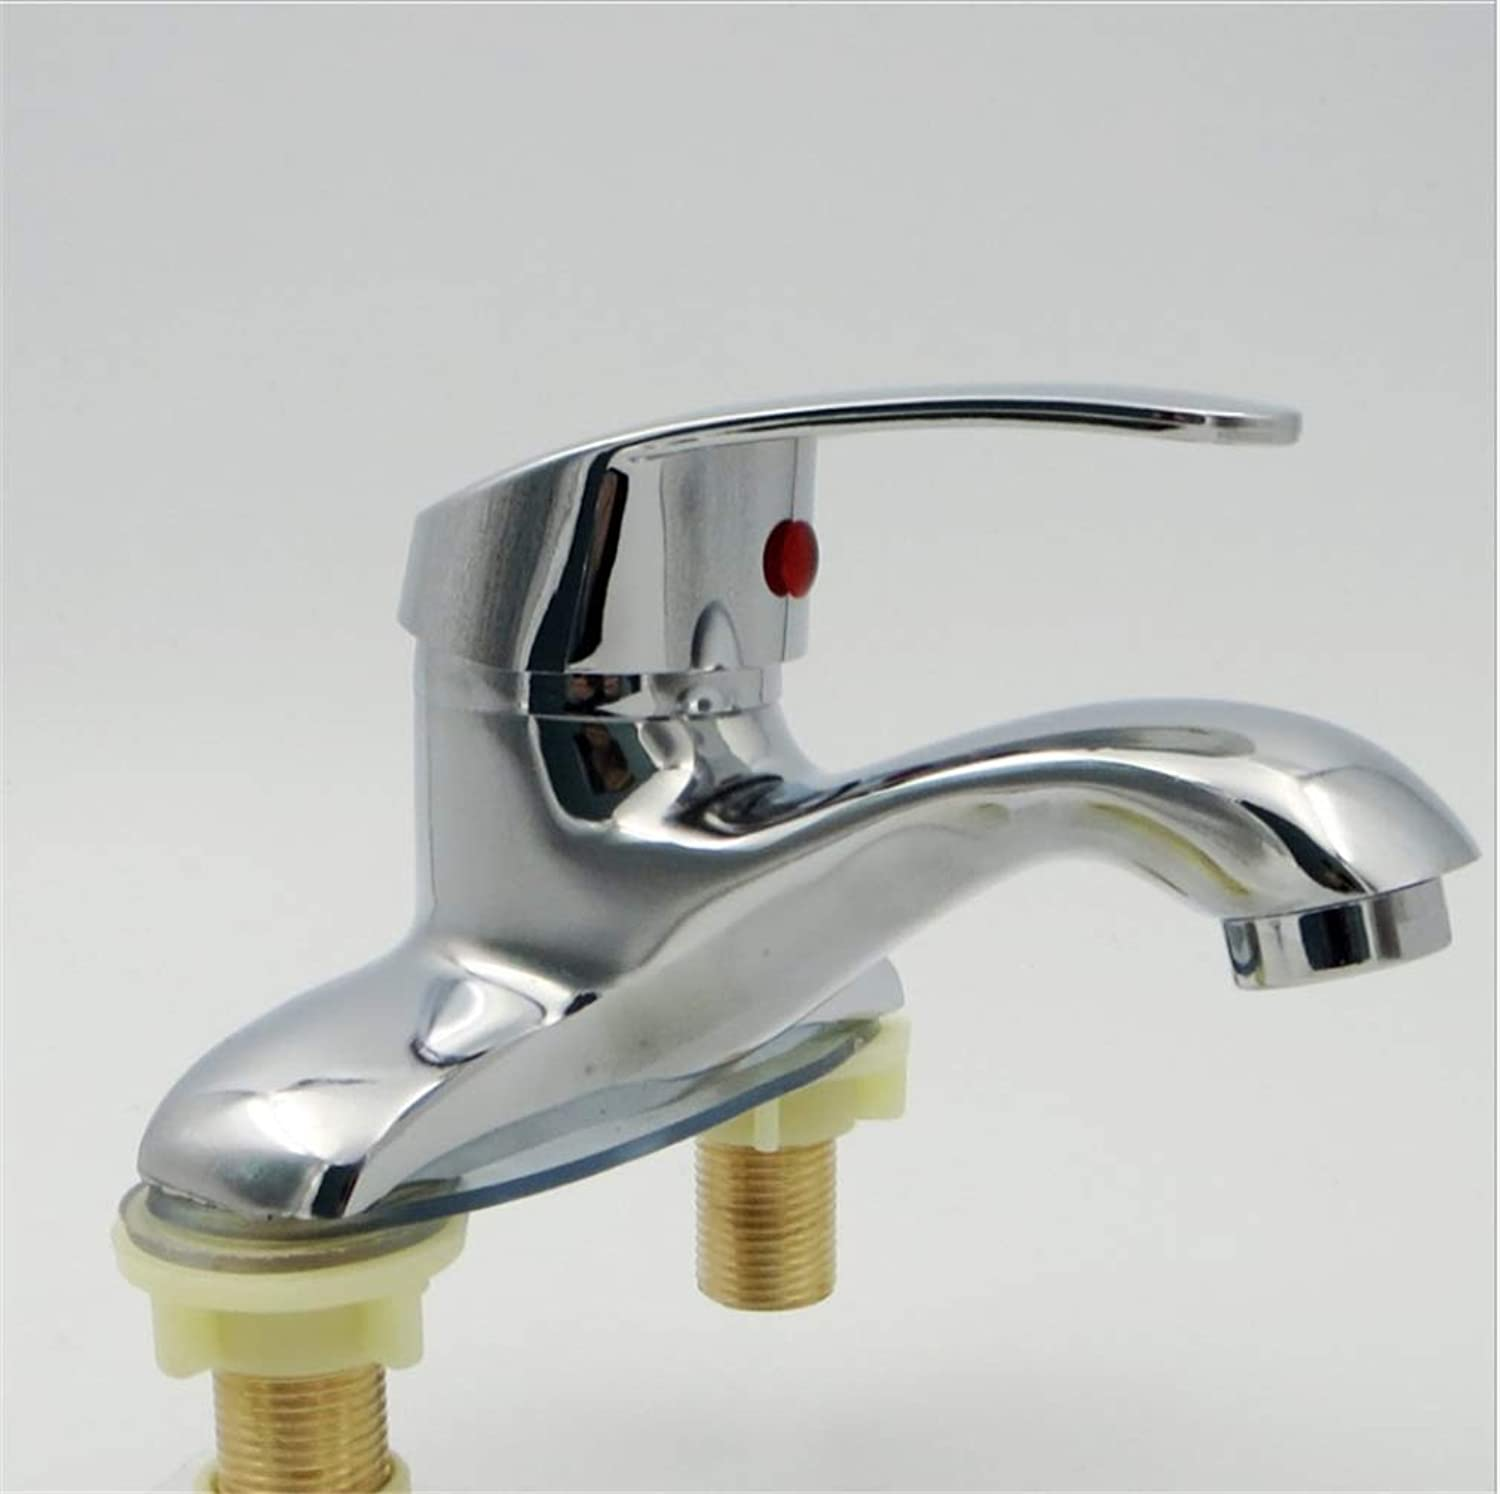 Basin Faucetsolar Double Two Lift Lifting Basin, Faucet Bathtub Hot and Cold Water Basin Faucet